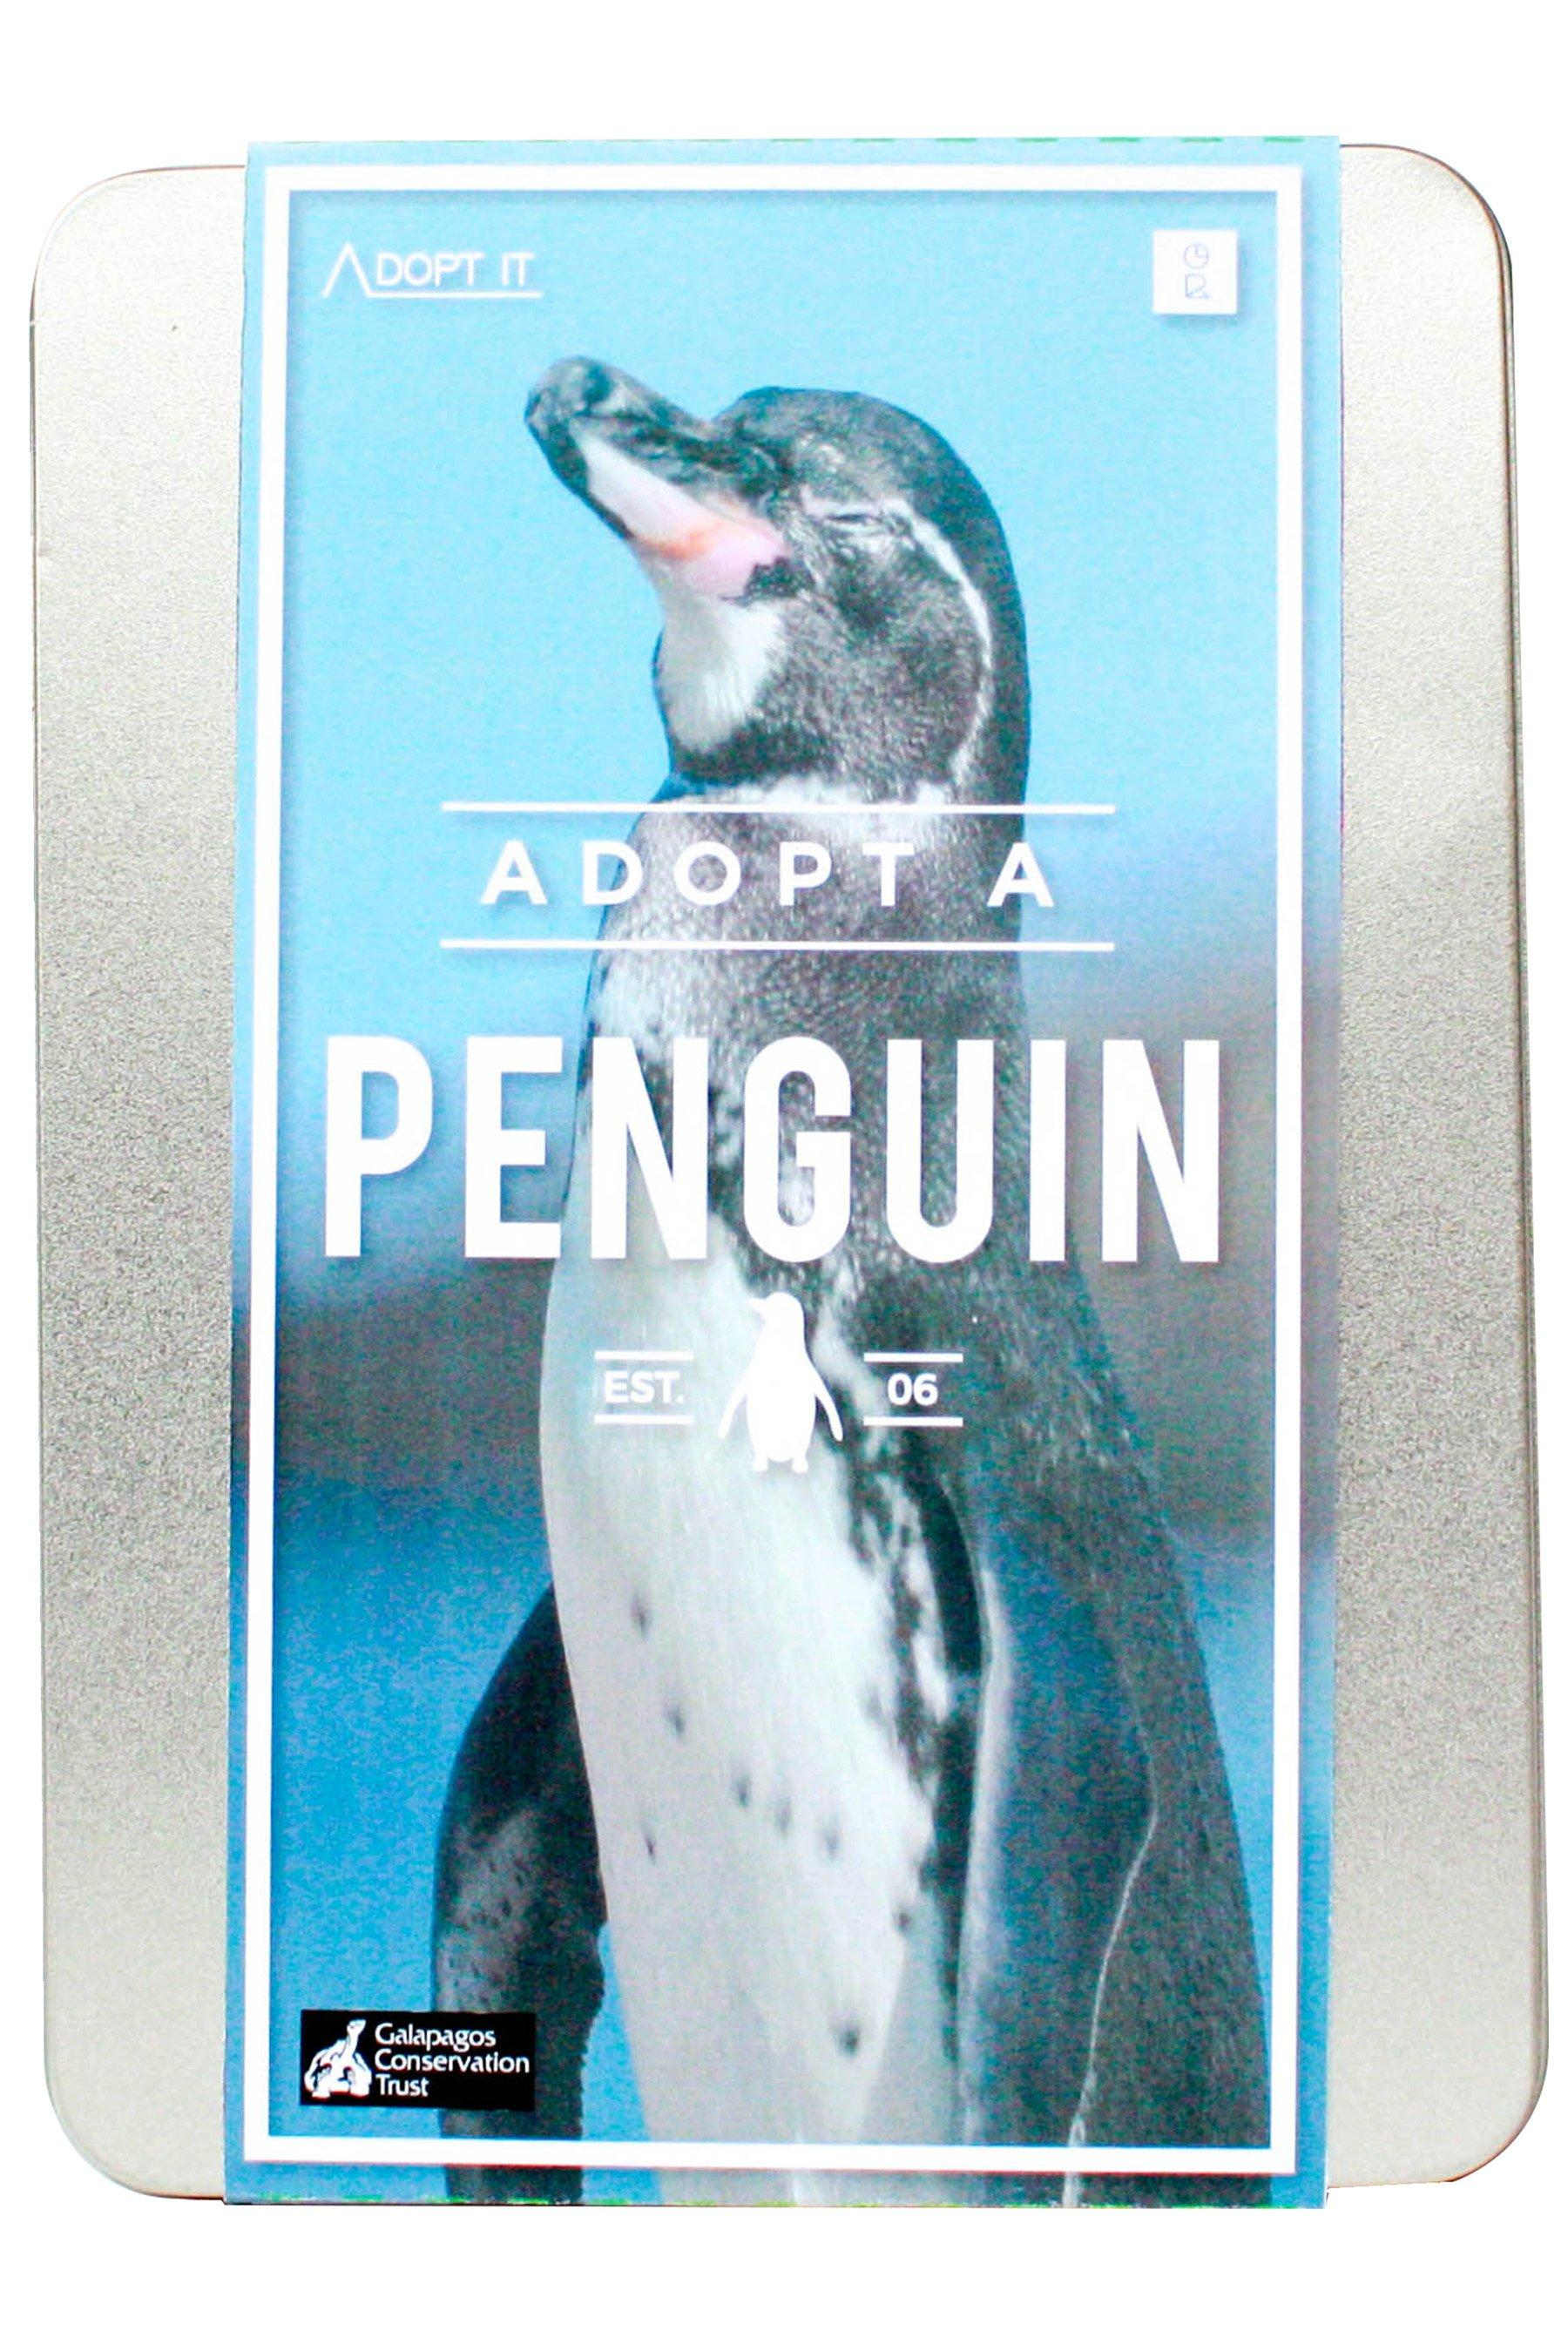 Compare retail prices of Adopt It - Adopt a Penguin to get the best deal online